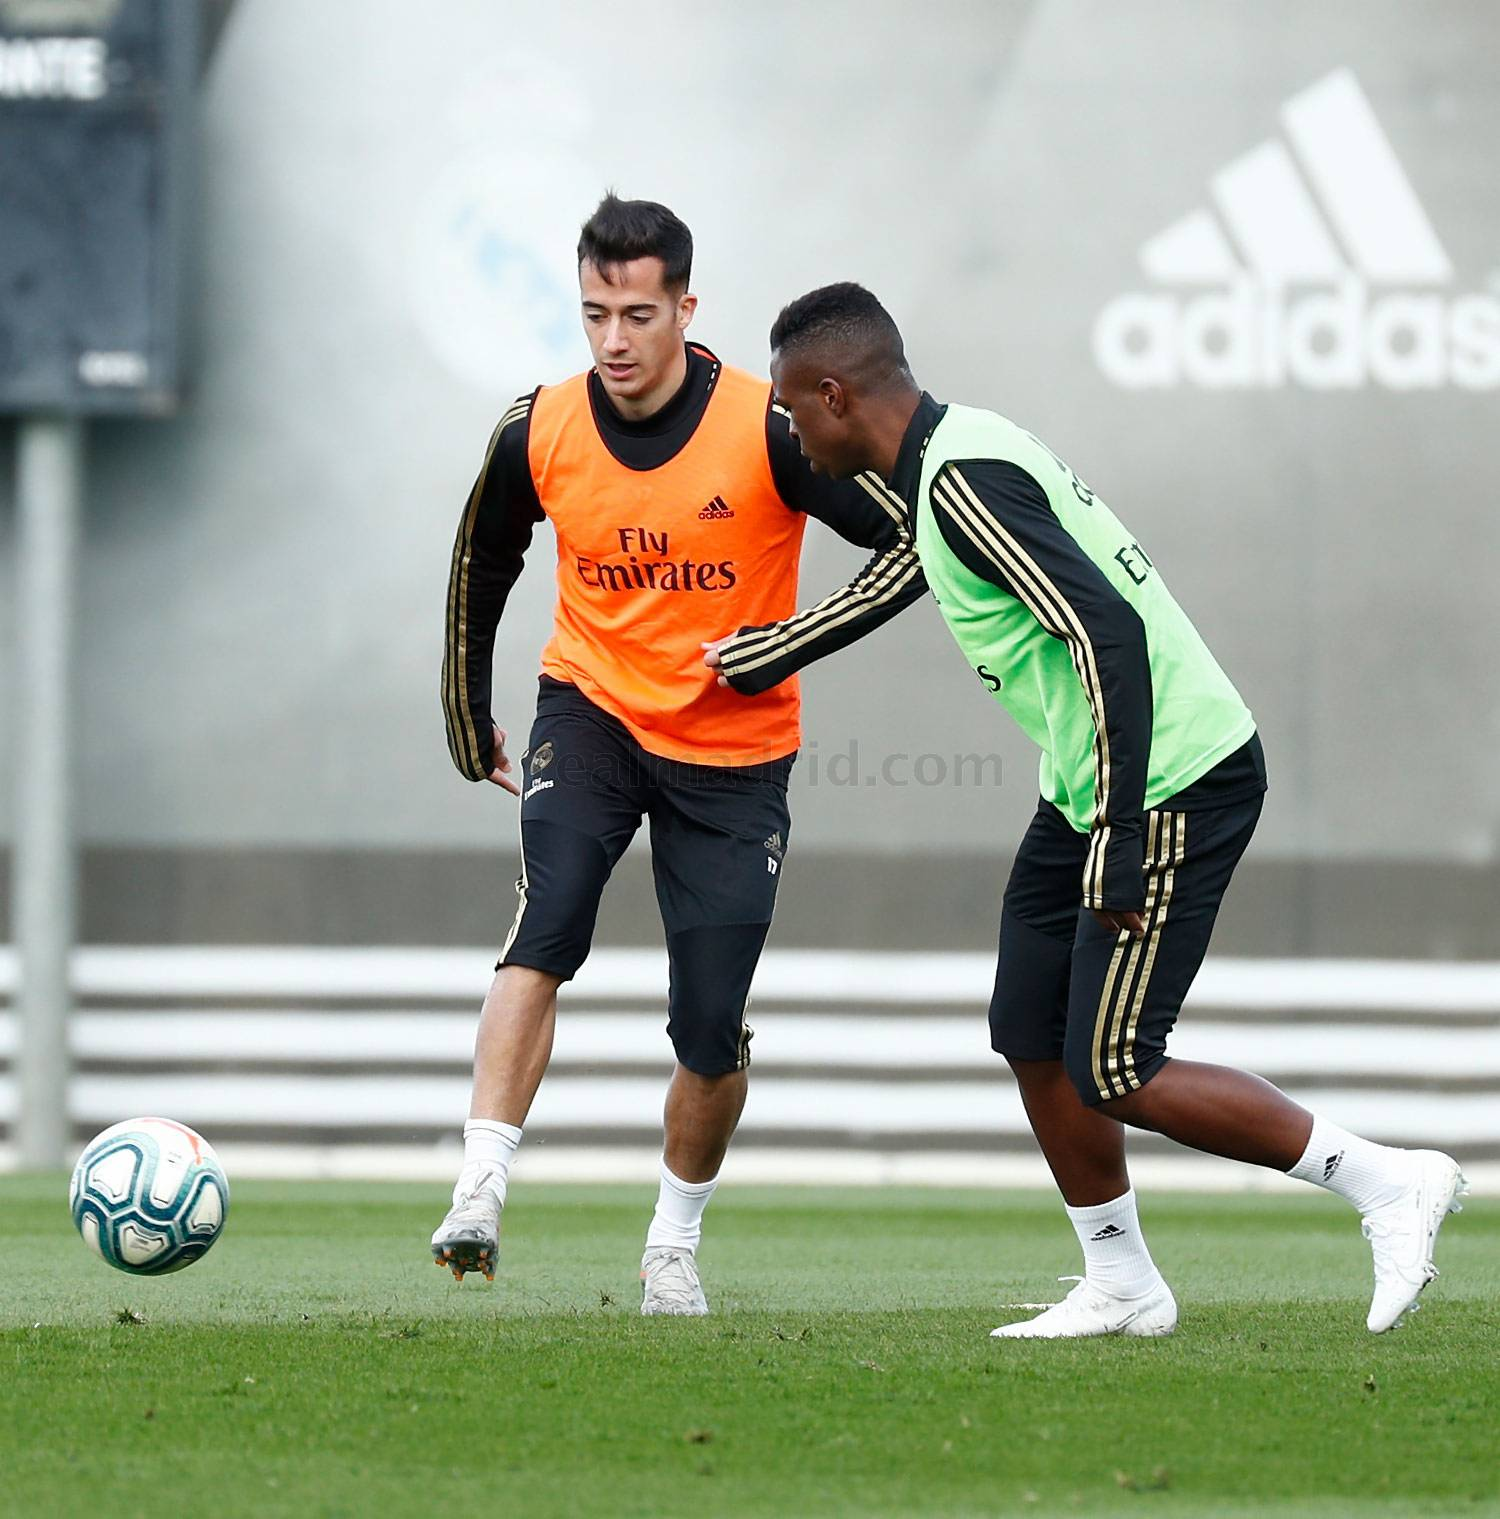 Real Madrid - Entrenamiento del Real Madrid  - 07-11-2019